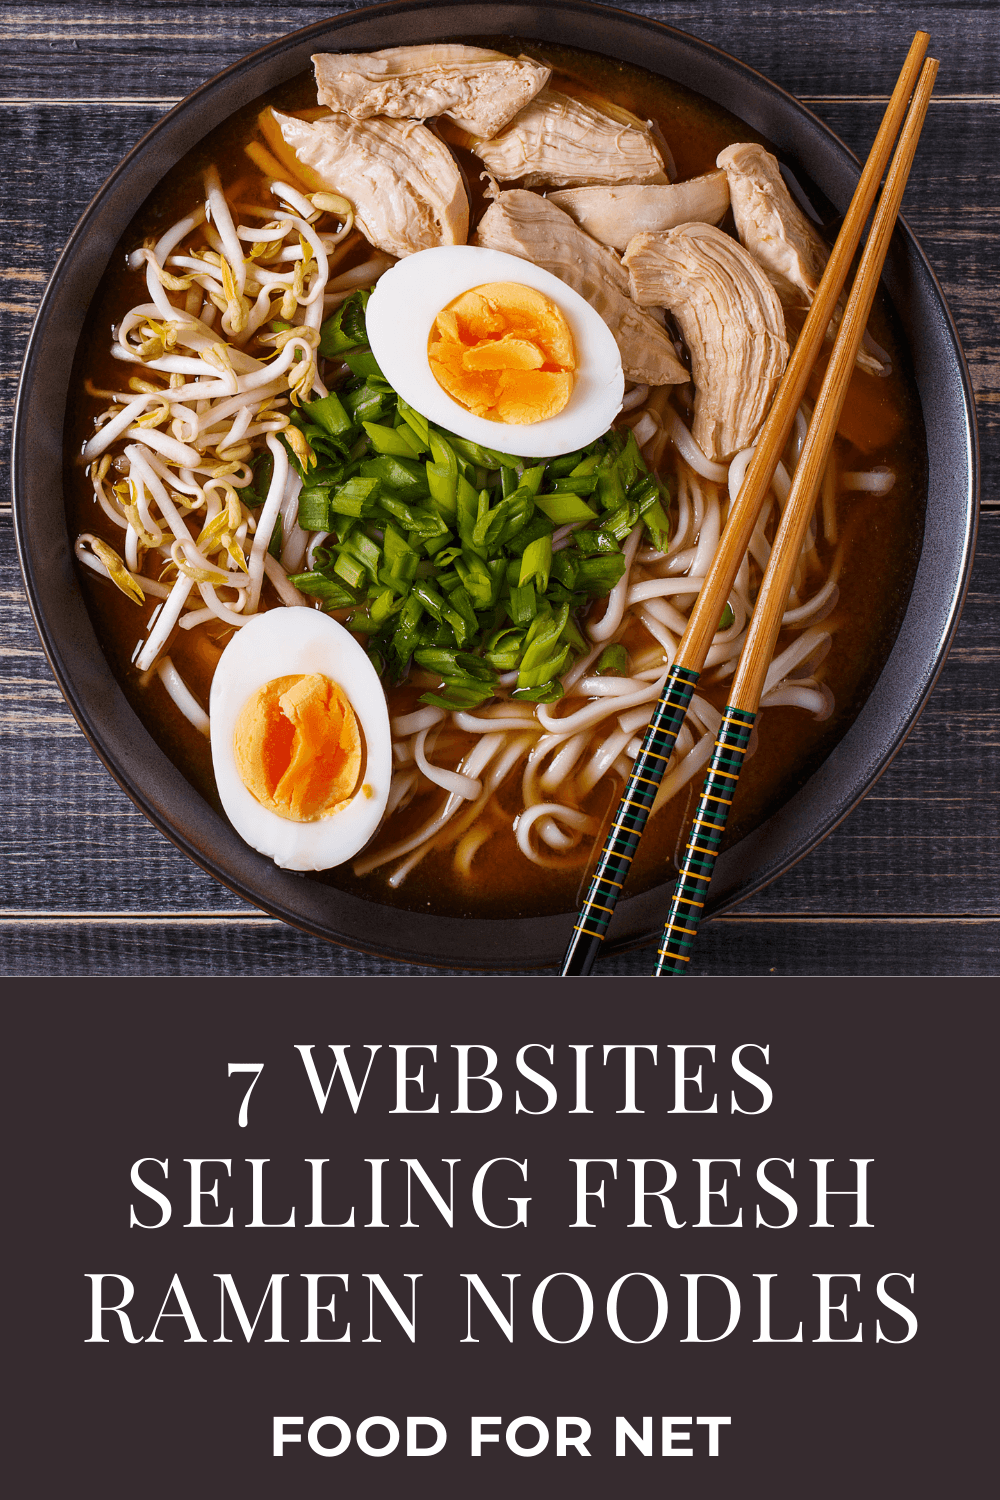 Buy Fresh Ramen Noodles Online From These 7 Websites